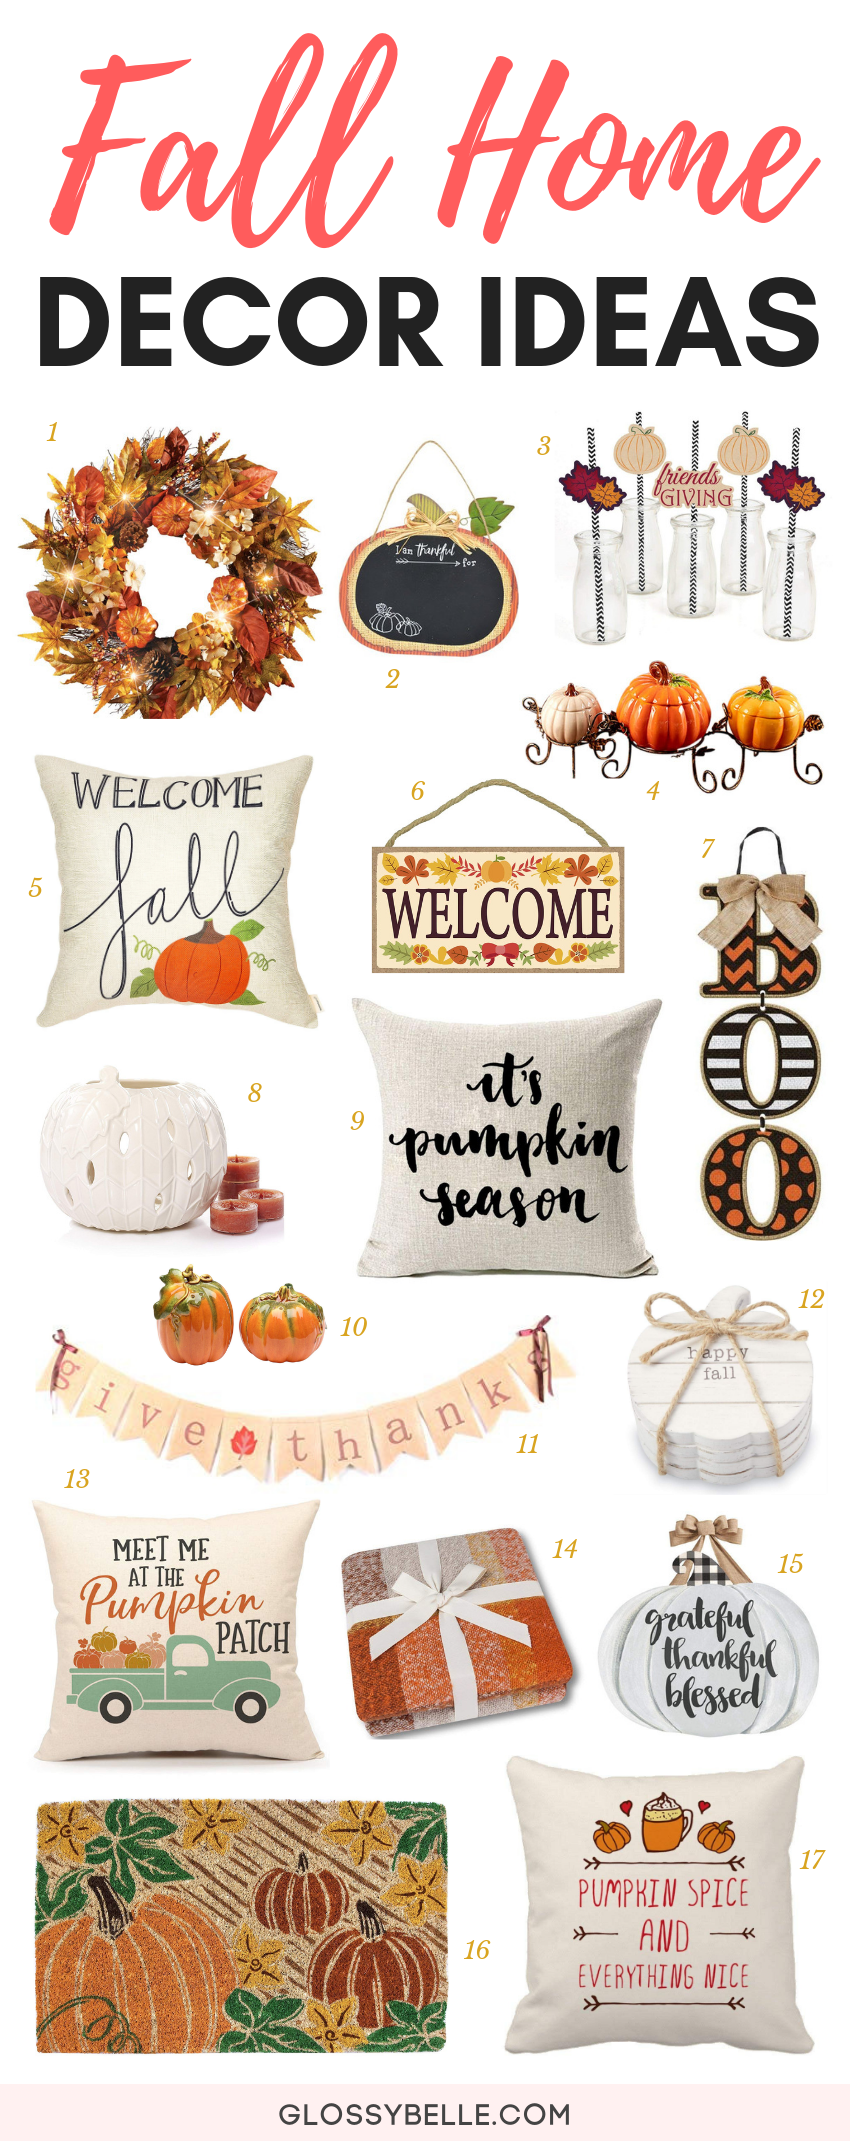 With fall officially upon us, it's time for all things festive, fun, and cozy!If you've been looking for some fall inspiration on how to decorate your home this autumn season, here are over 20 fun and festive fall decor ideas. | fall home decor | fall home decoration | autumn inspiration | pumpkin | home decor ideas | fall decorations #falldecor #fallhomedecor #homedecor #homedecorideas #fall #pumpkin #fallfun #fallhome #autumn #autumndecor #falldecorideas #decoratingideas #falldecoratingideas